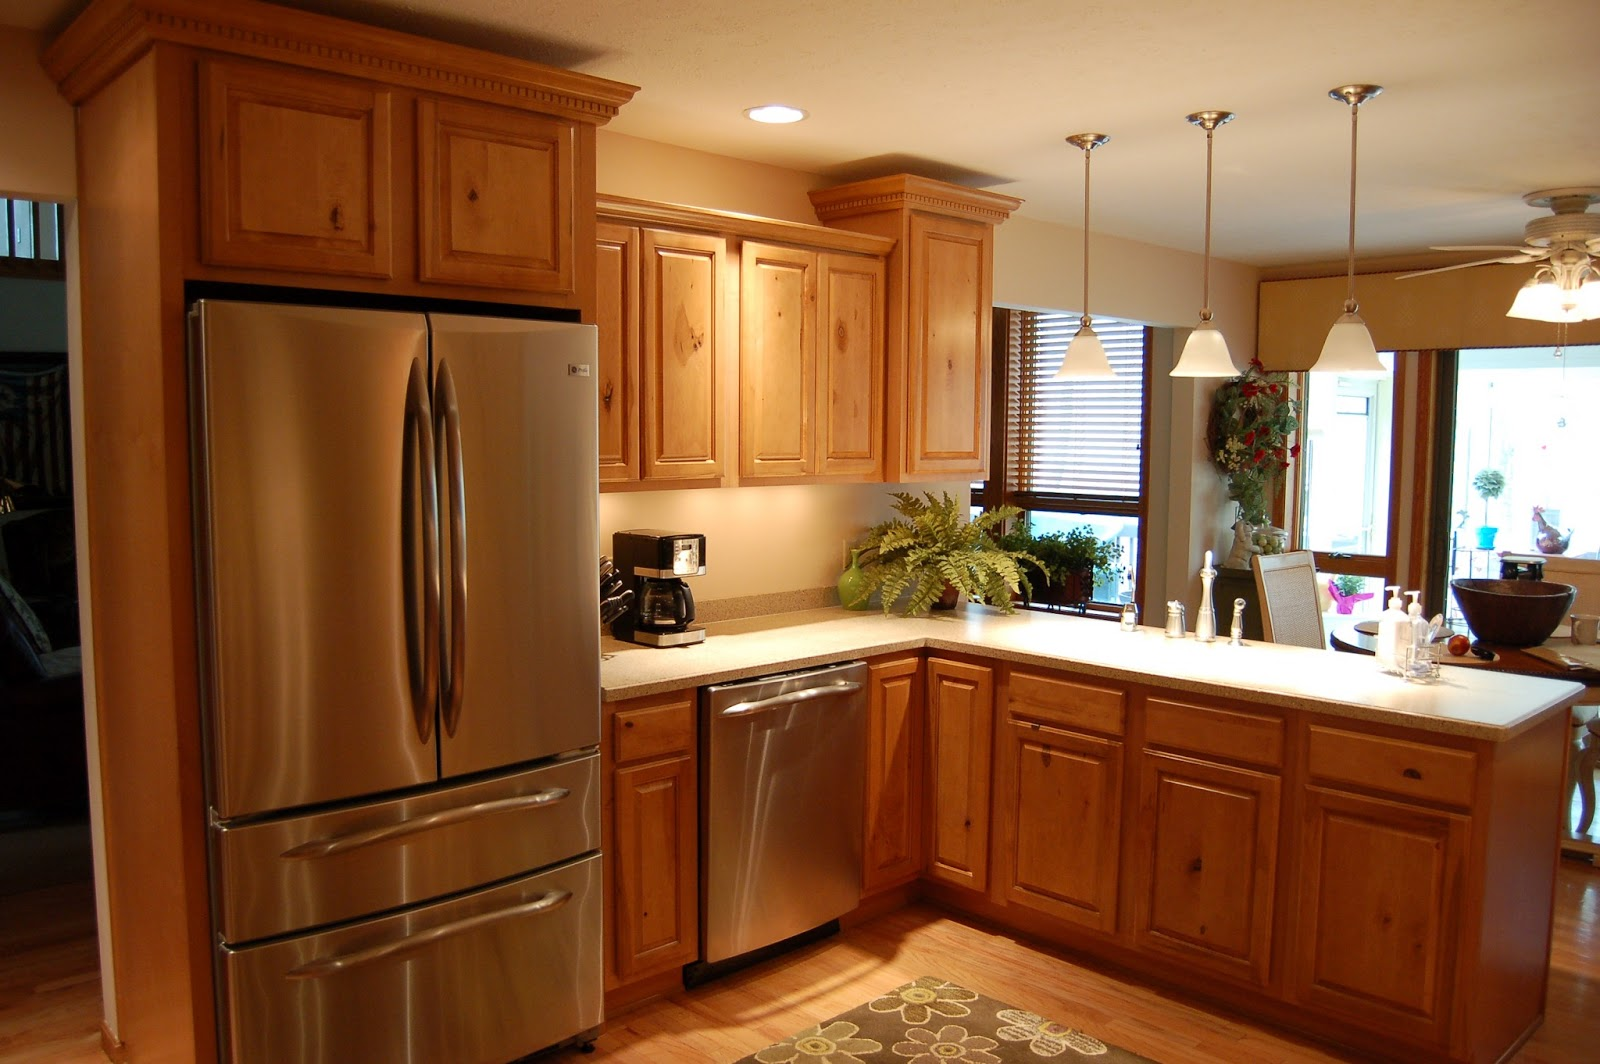 Chicago Kitchen Remodeling Ideas: Kitchen Remodeling Chicago